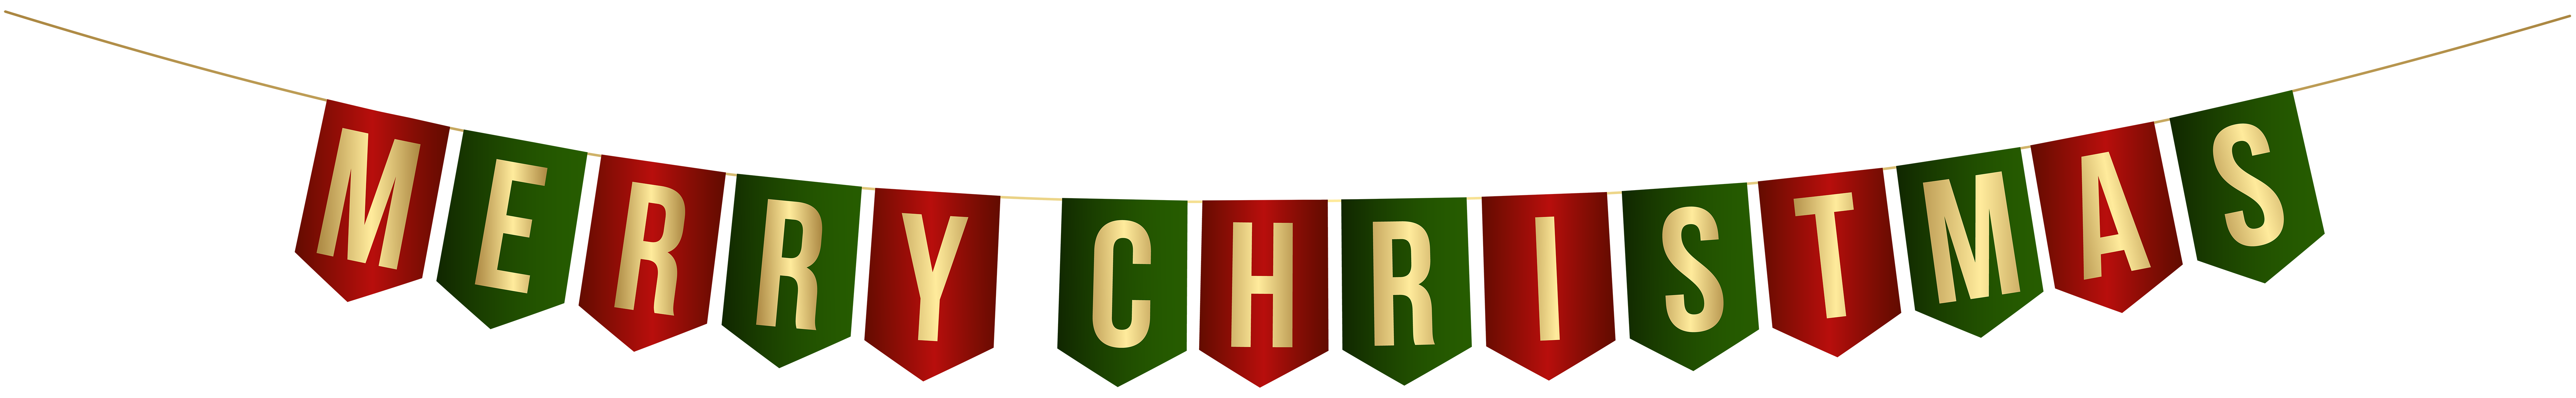 Streamers clipart green. Merry christmas streamer png